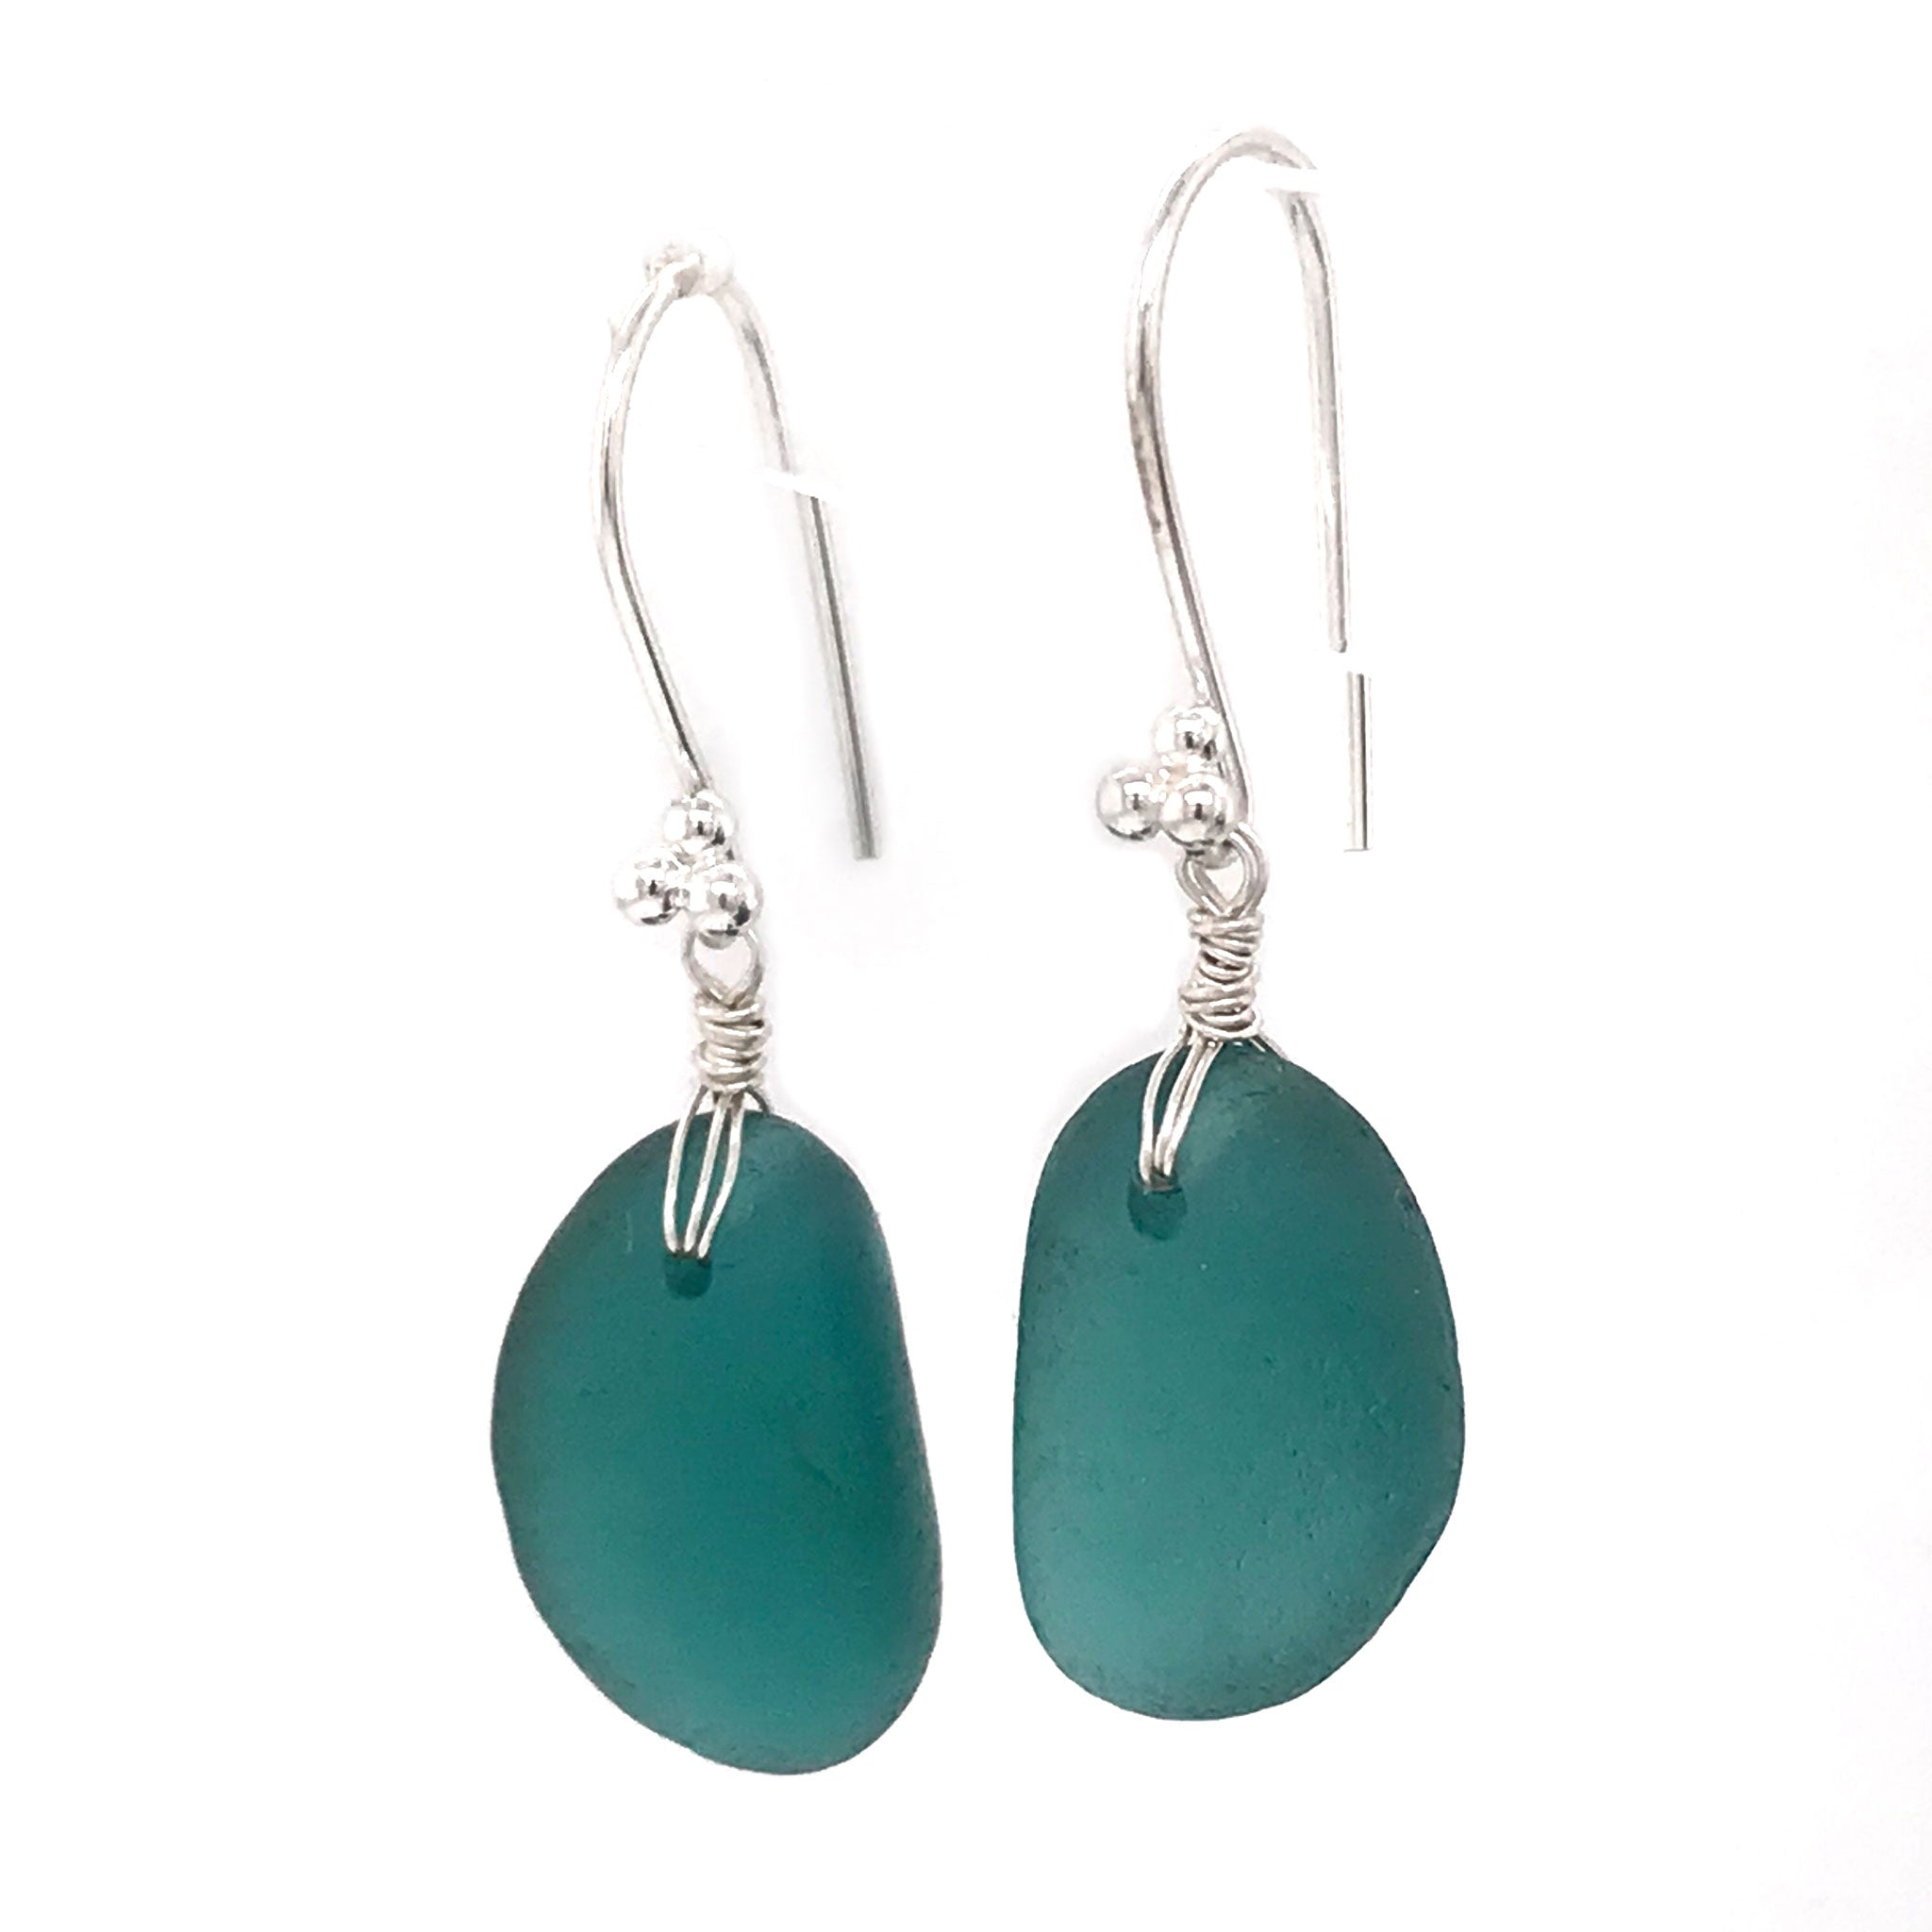 teal seaglass earrings sterling silver drops Kriket Broadhurst jewelry Christmas gift